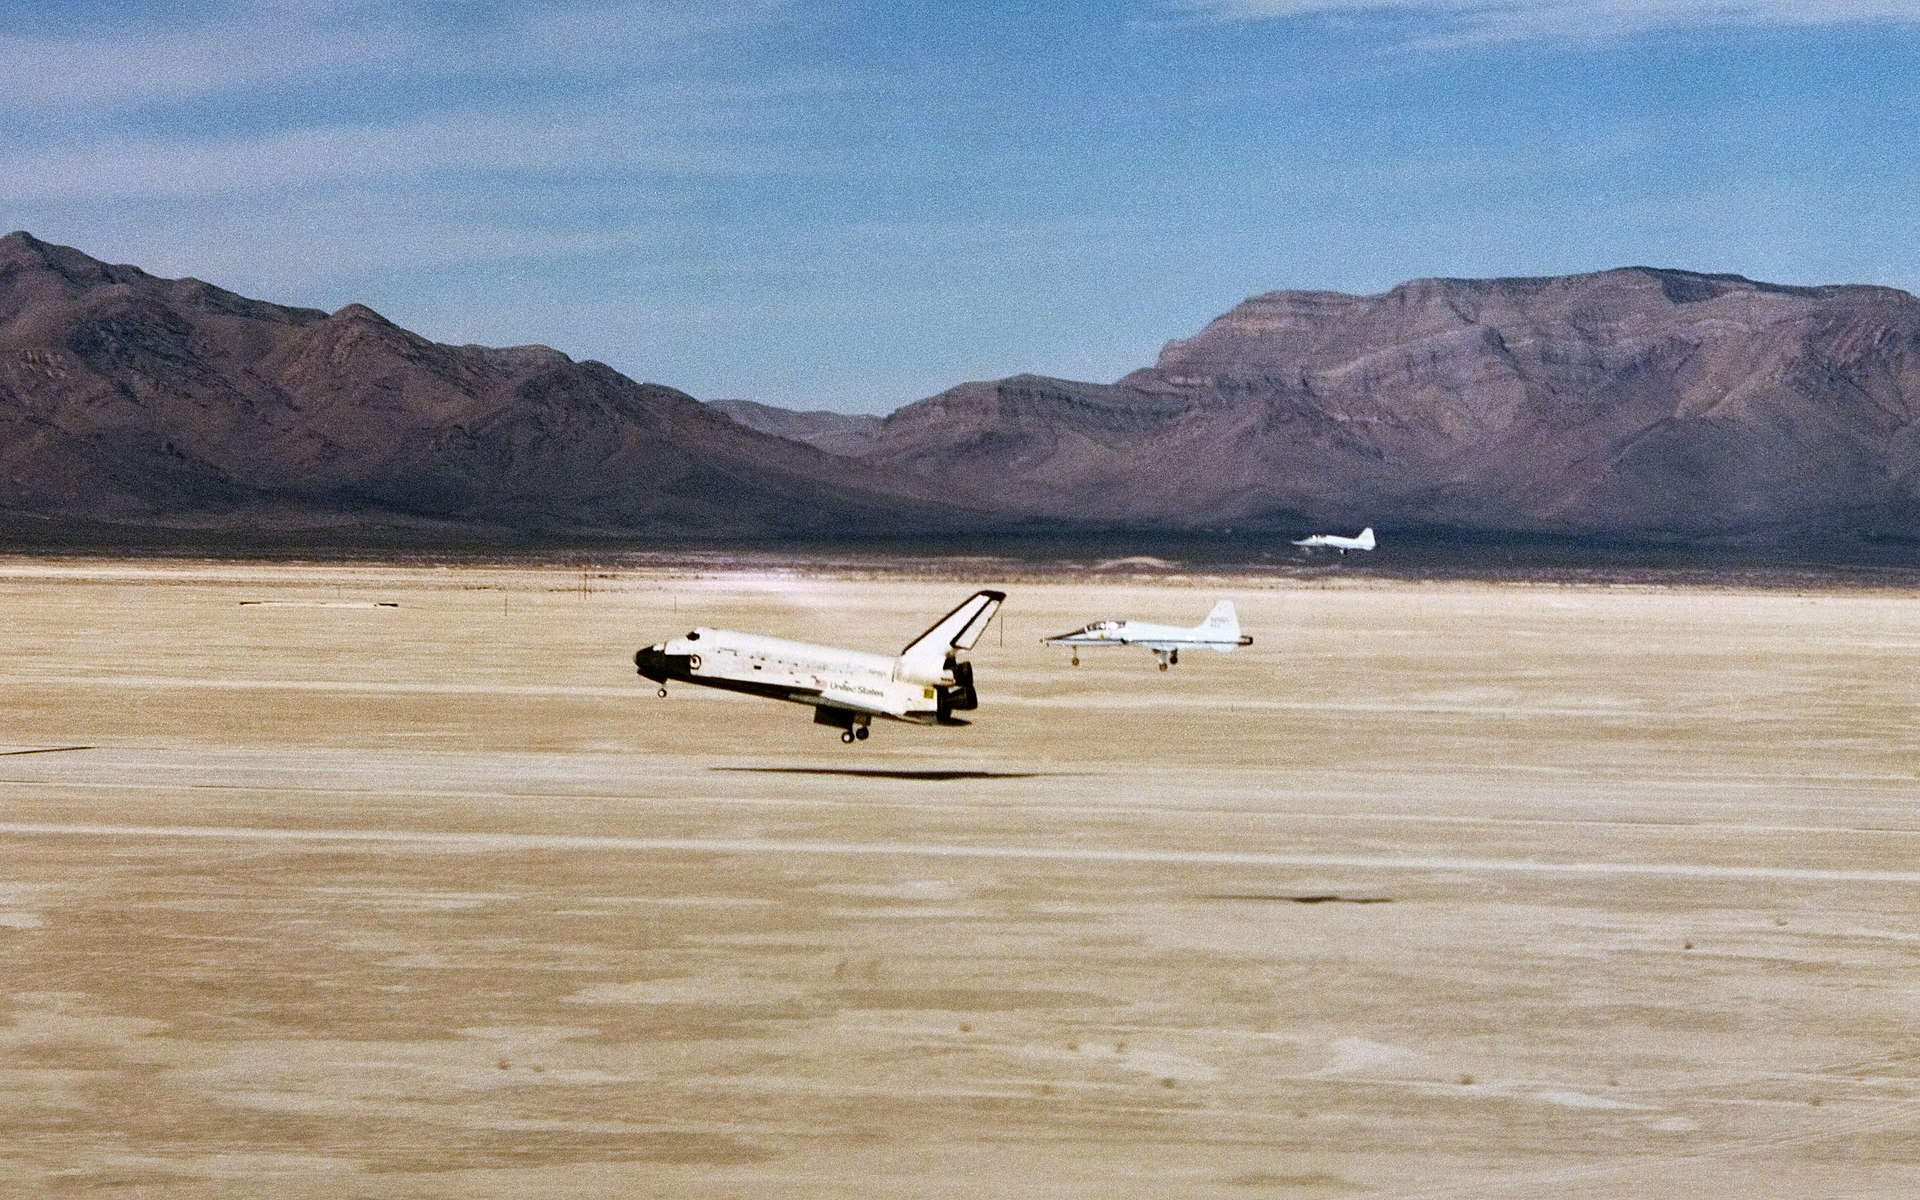 space shuttle landing july 4 1982 - photo #22